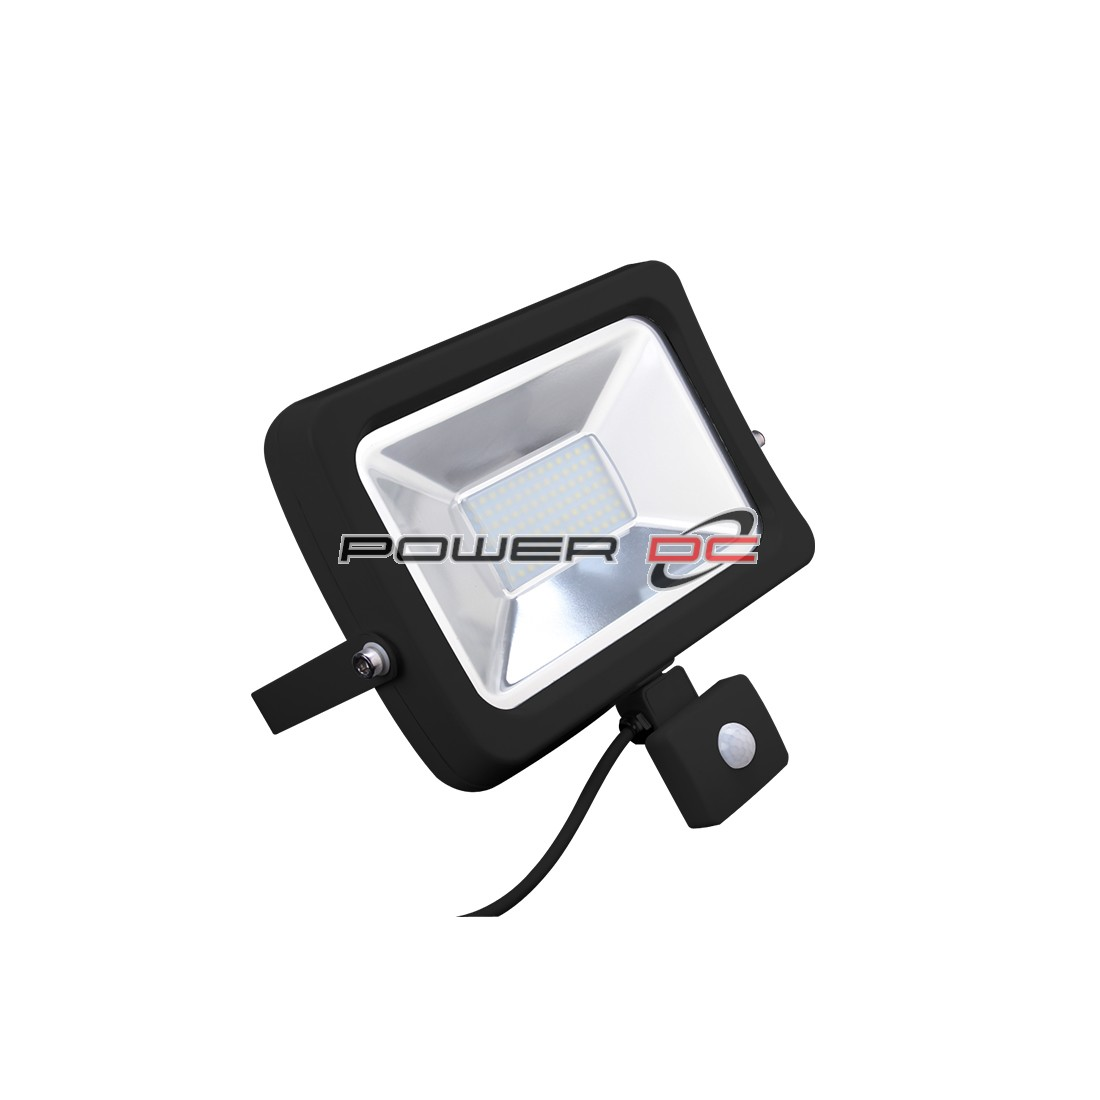 ULTRACHARGE SENSOR LED FLOOD LIGHT 20WATT - BLACK